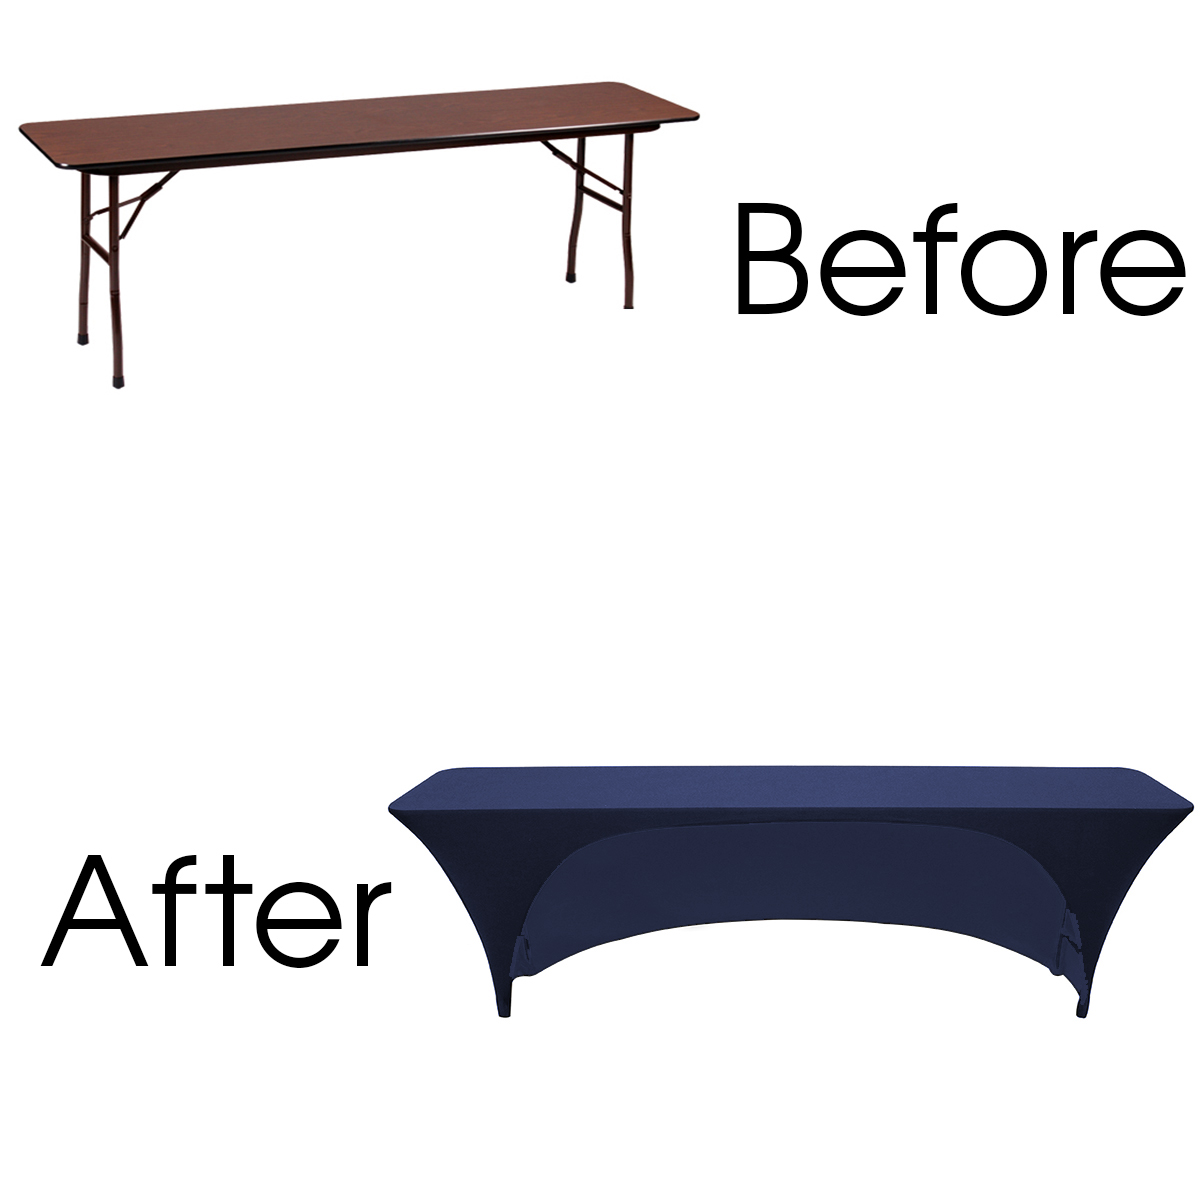 stretch-spandex-8ft-18-inches-open-back-rectangular-table-covers-navy-before-after.jpg